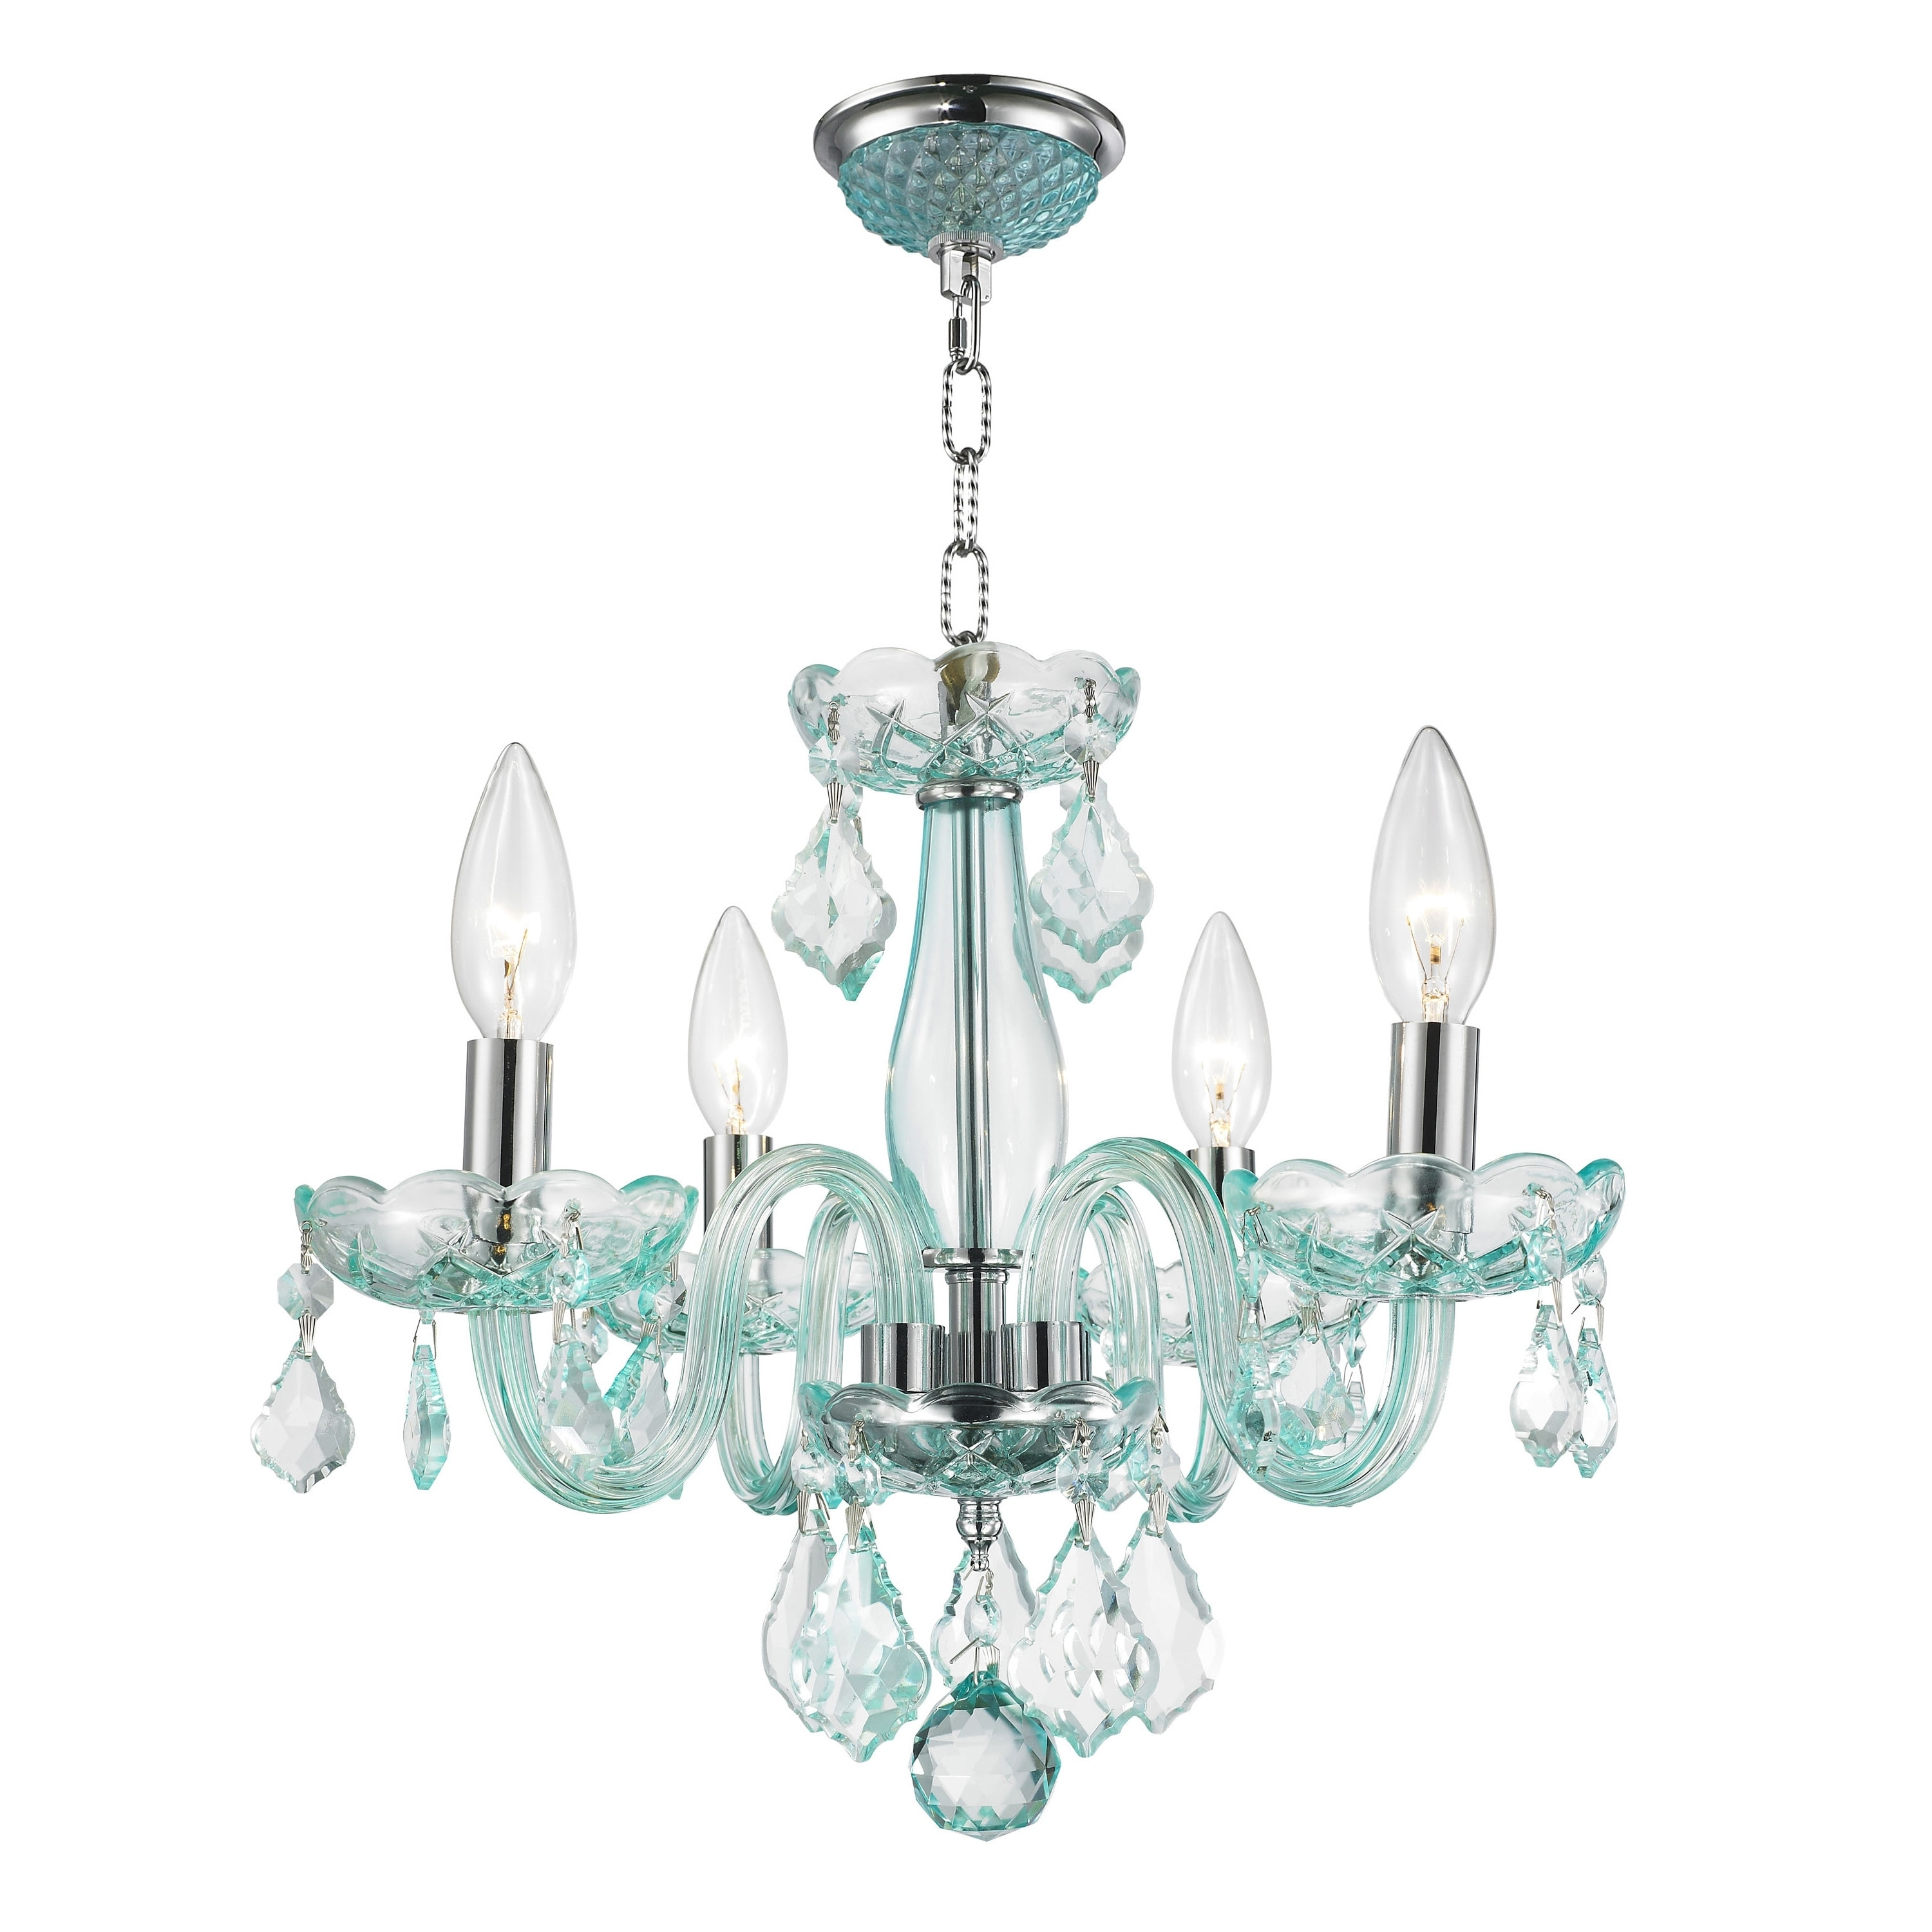 Preferred Turquoise Chandelier Crystals Pertaining To Kids Room Glamorous 4 Light Full Lead Turquoise Blue Crystal (View 6 of 15)